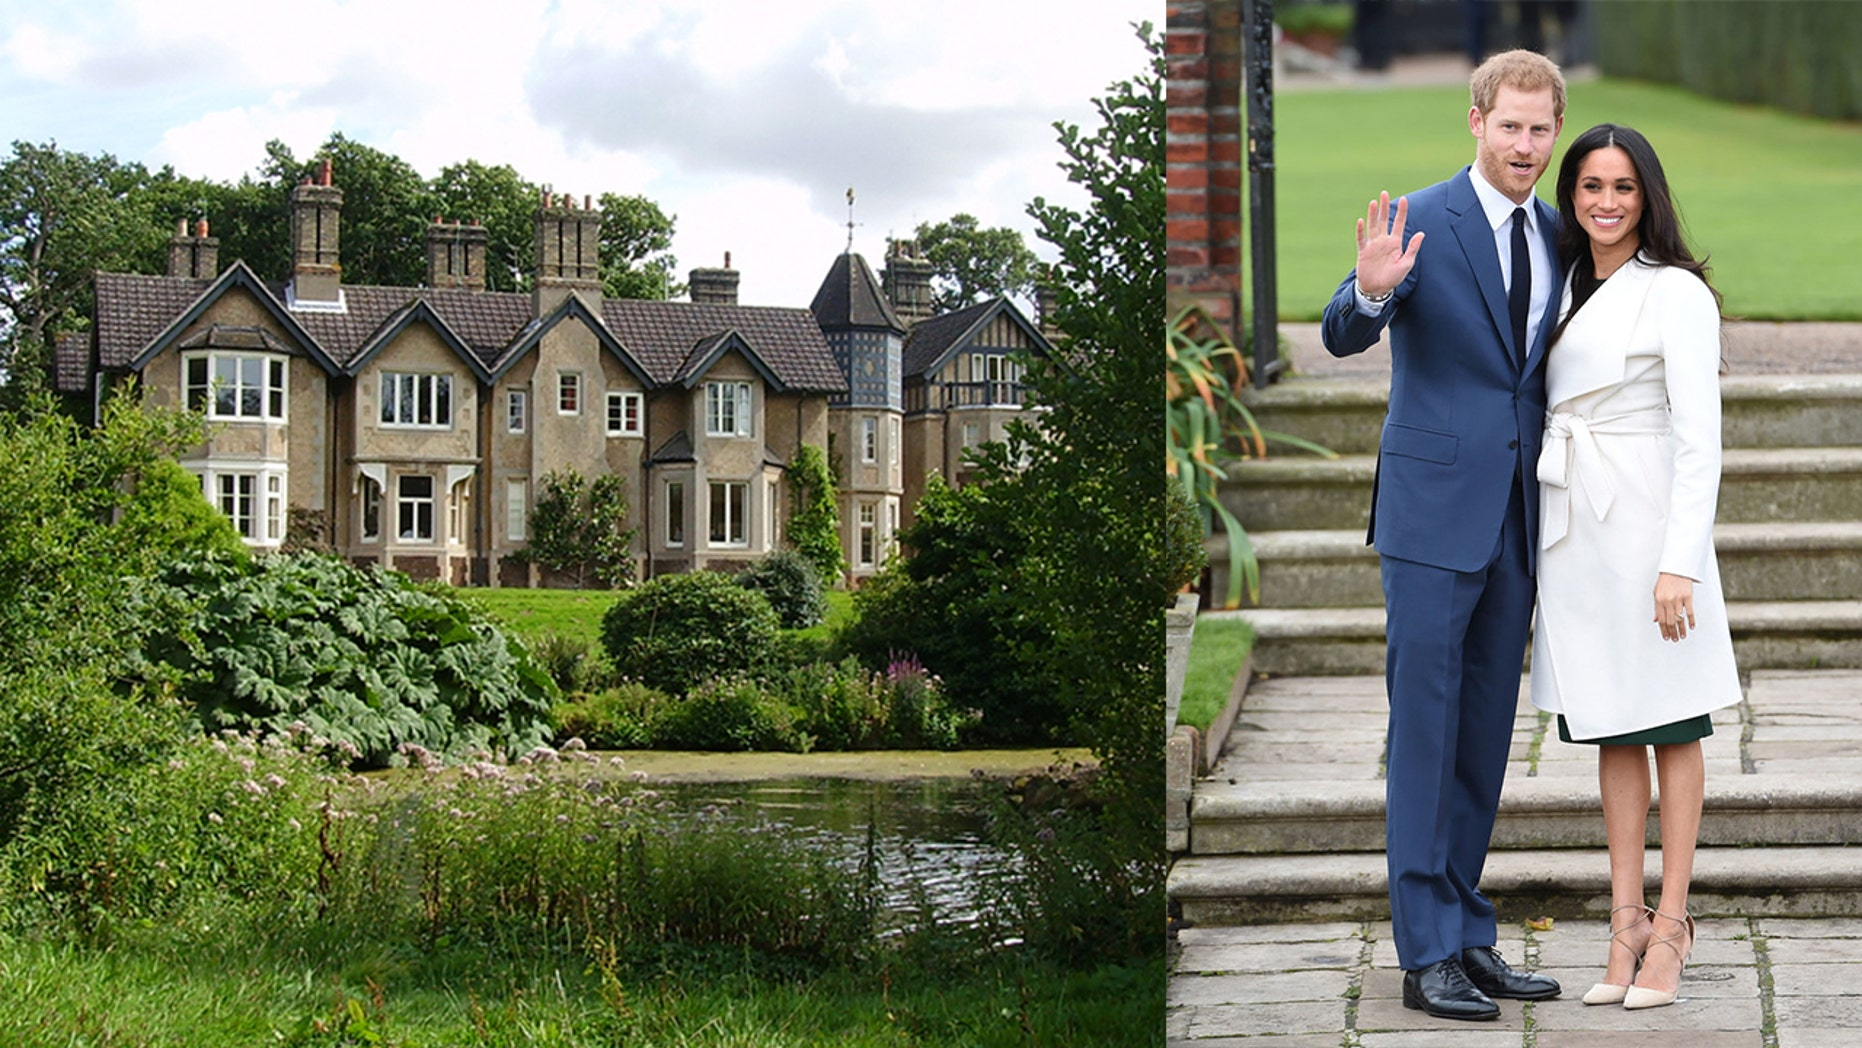 The queen gifted Harry and Meghan a country cottage at Sandringham Estate as a wedding gift.